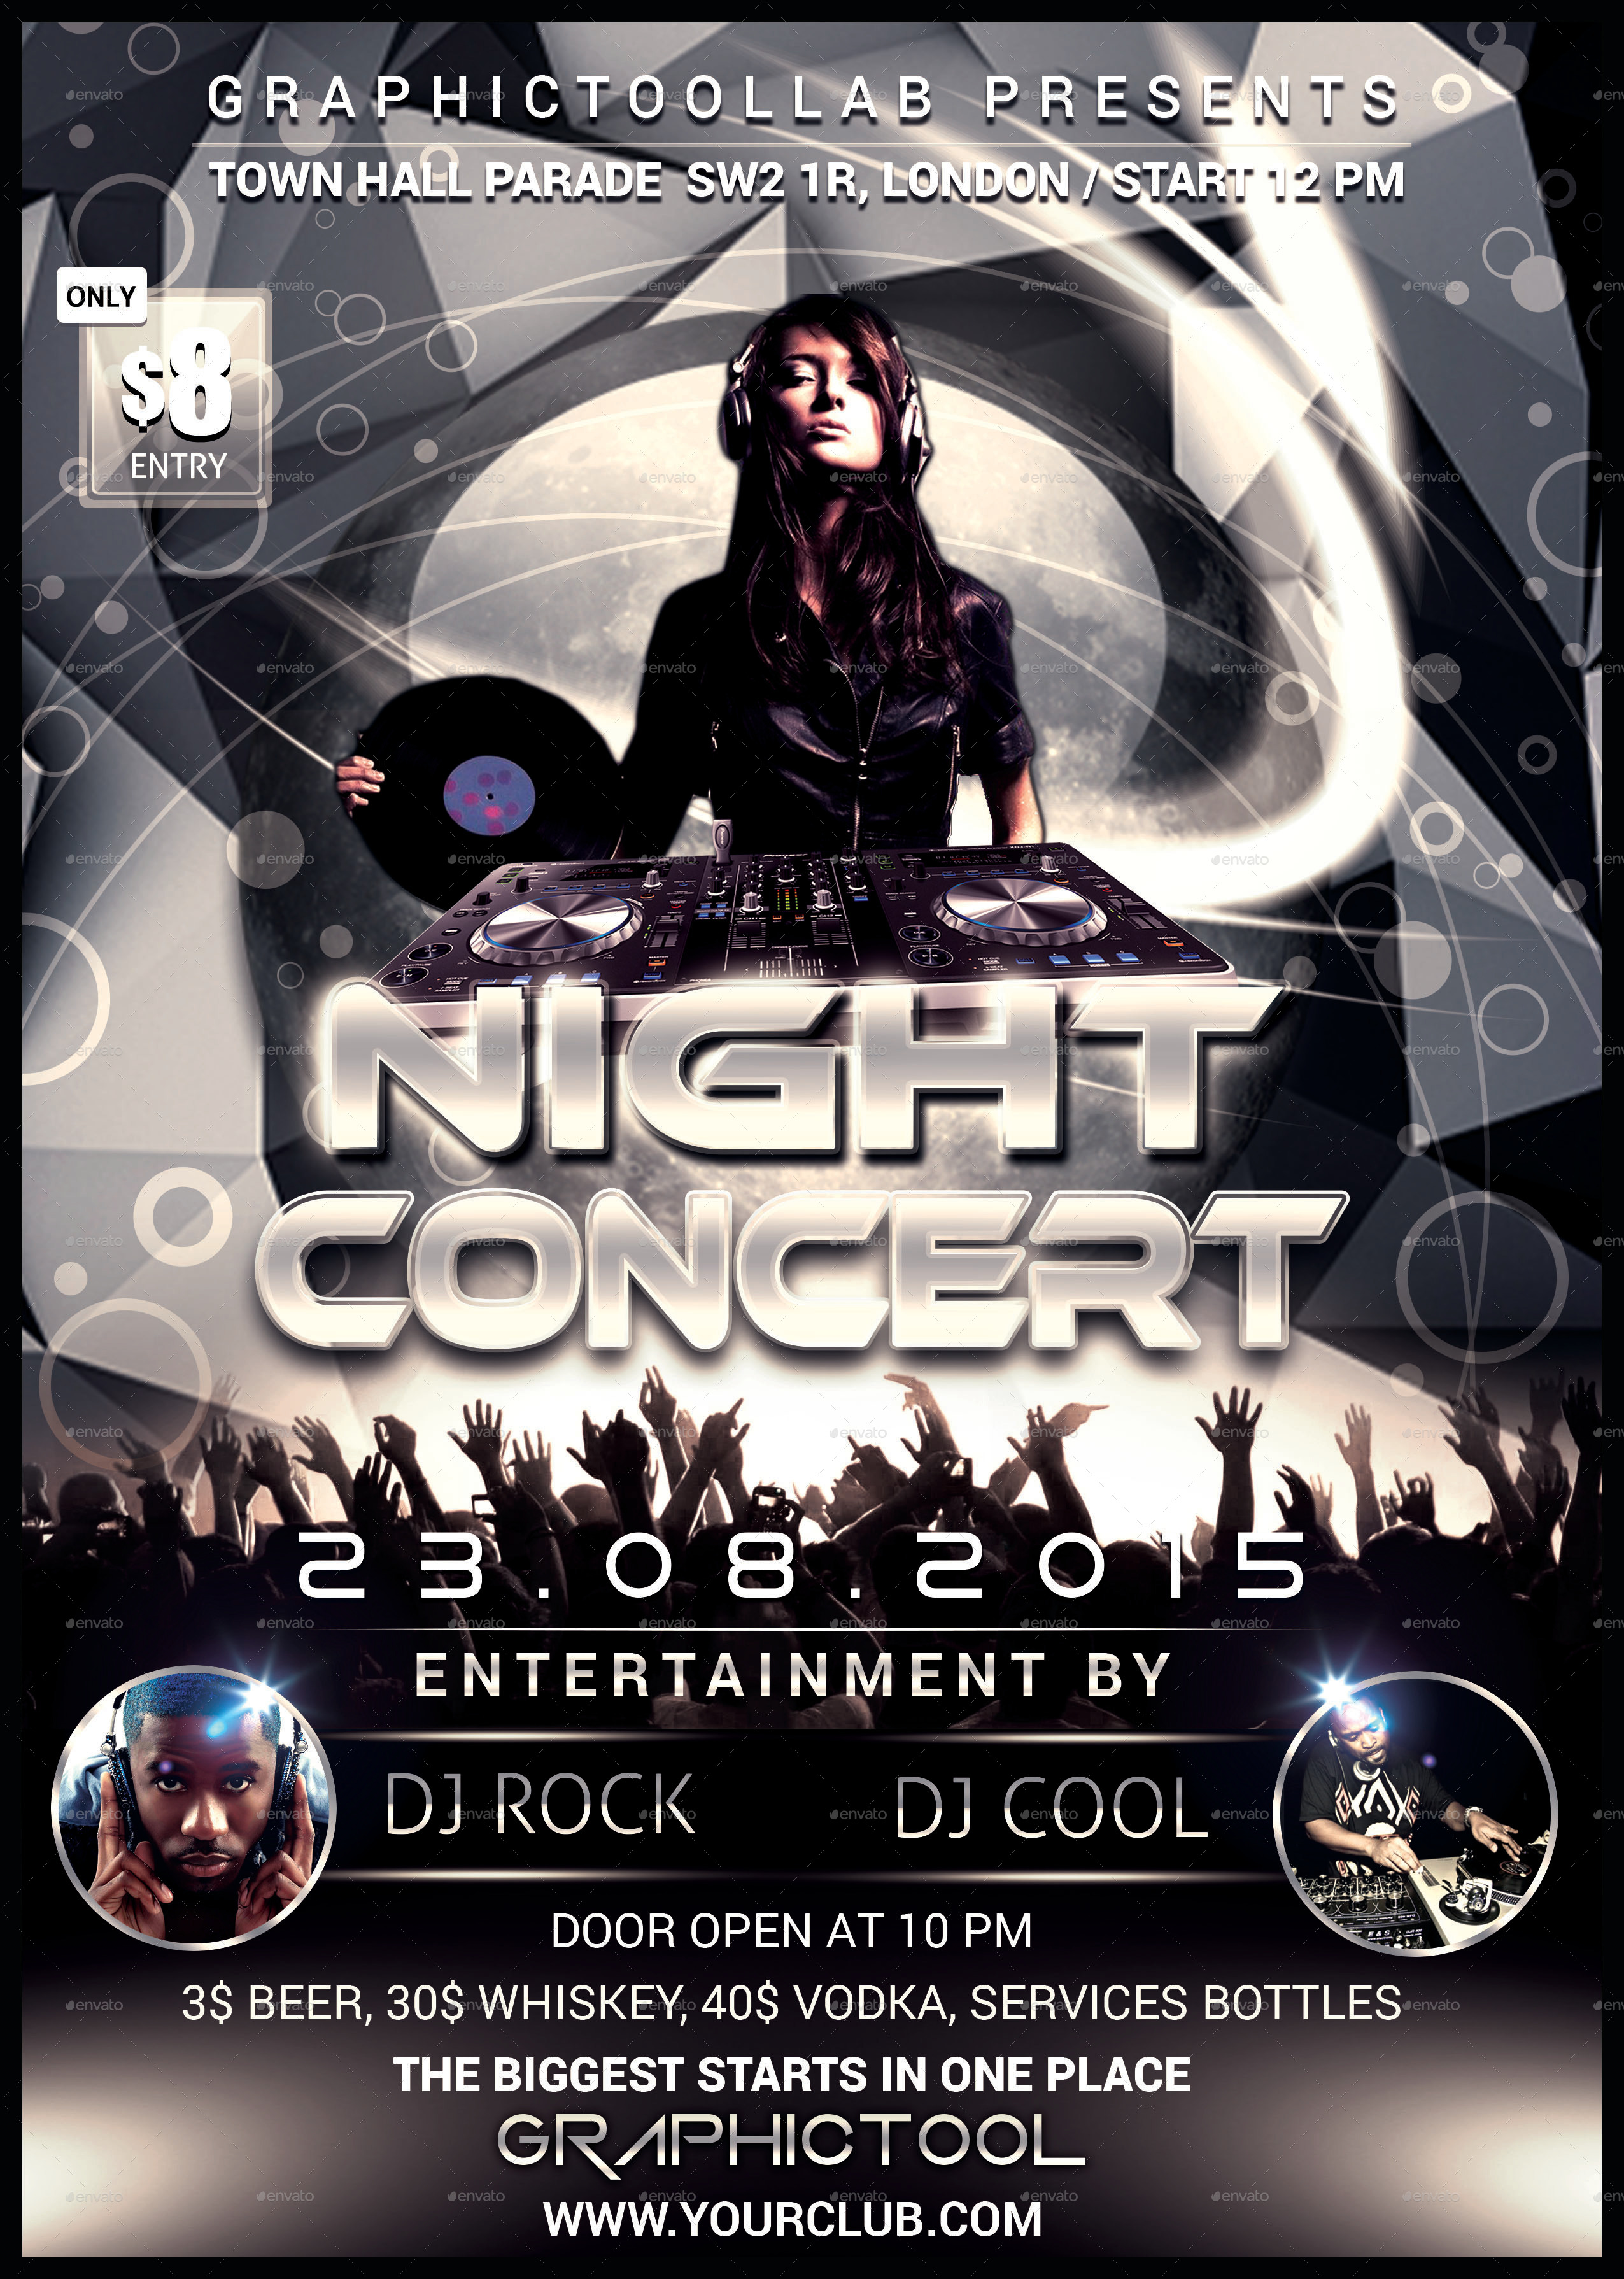 Night Concert Flyer/Poster Template by Graphictool | GraphicRiver